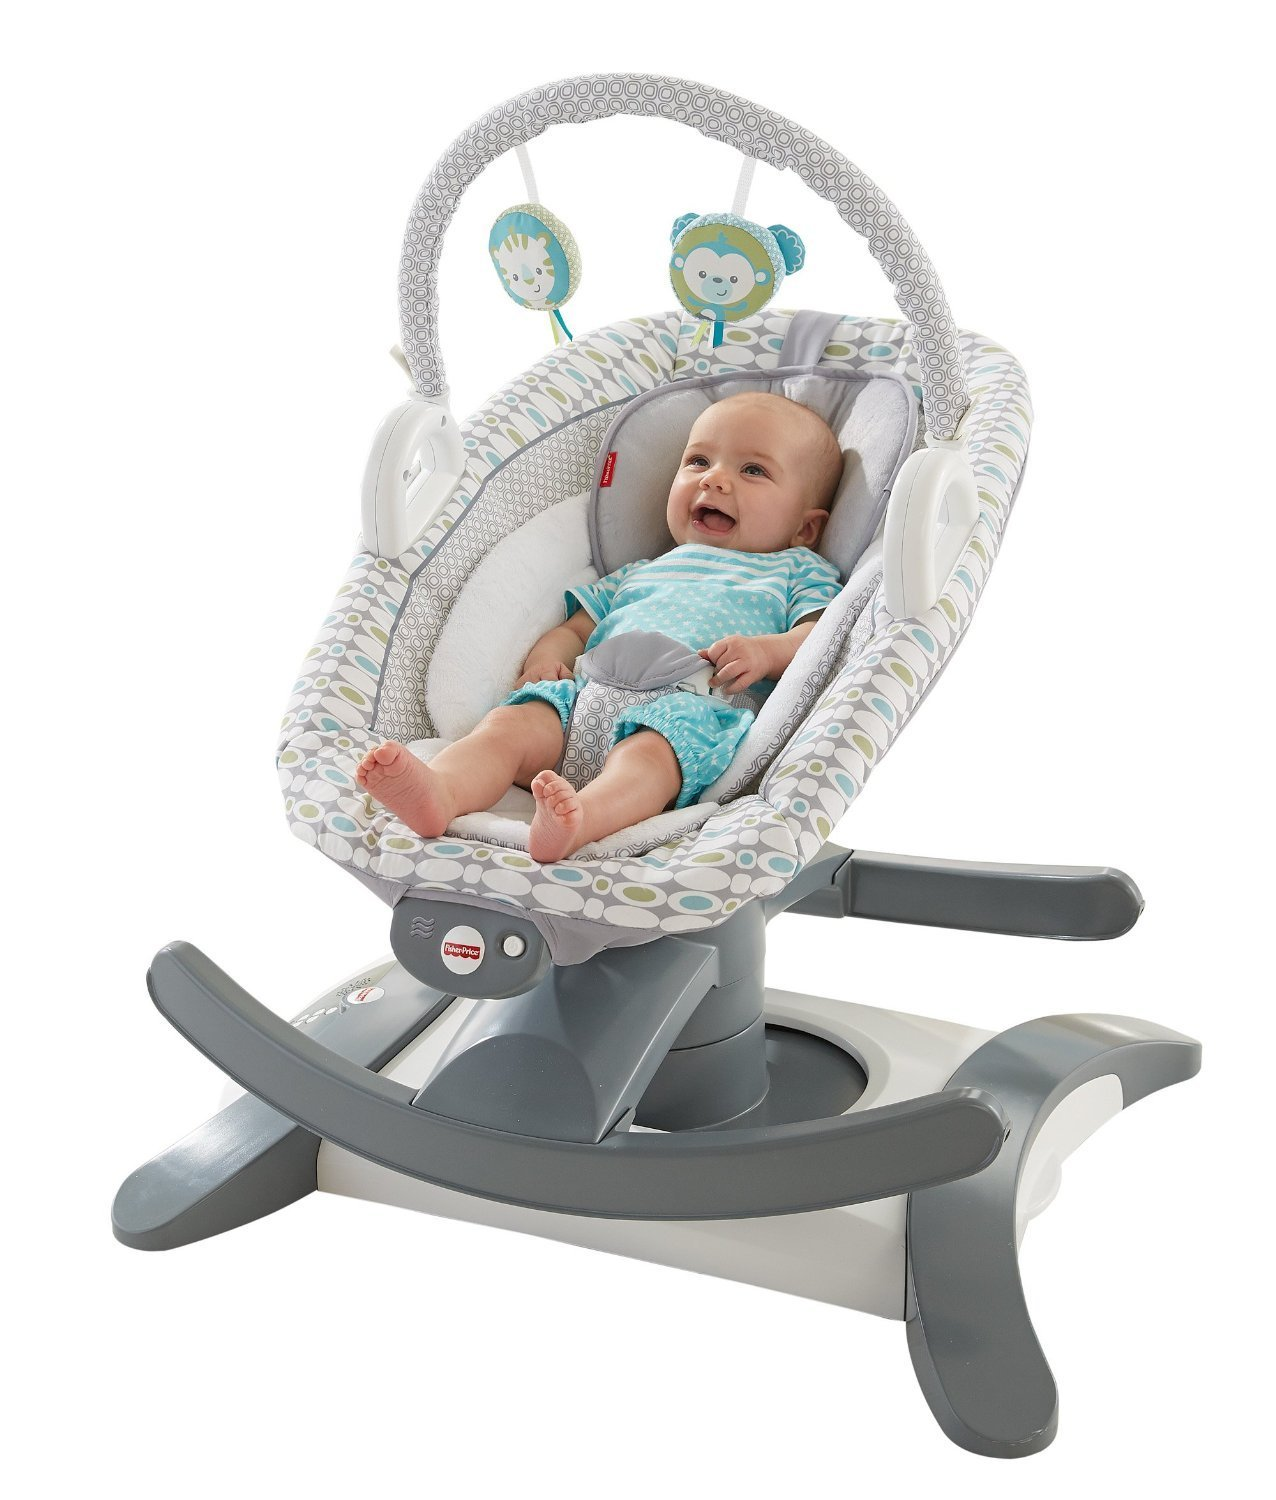 fisher-price 4-in-1 rock 'n glide soother, best baby swing